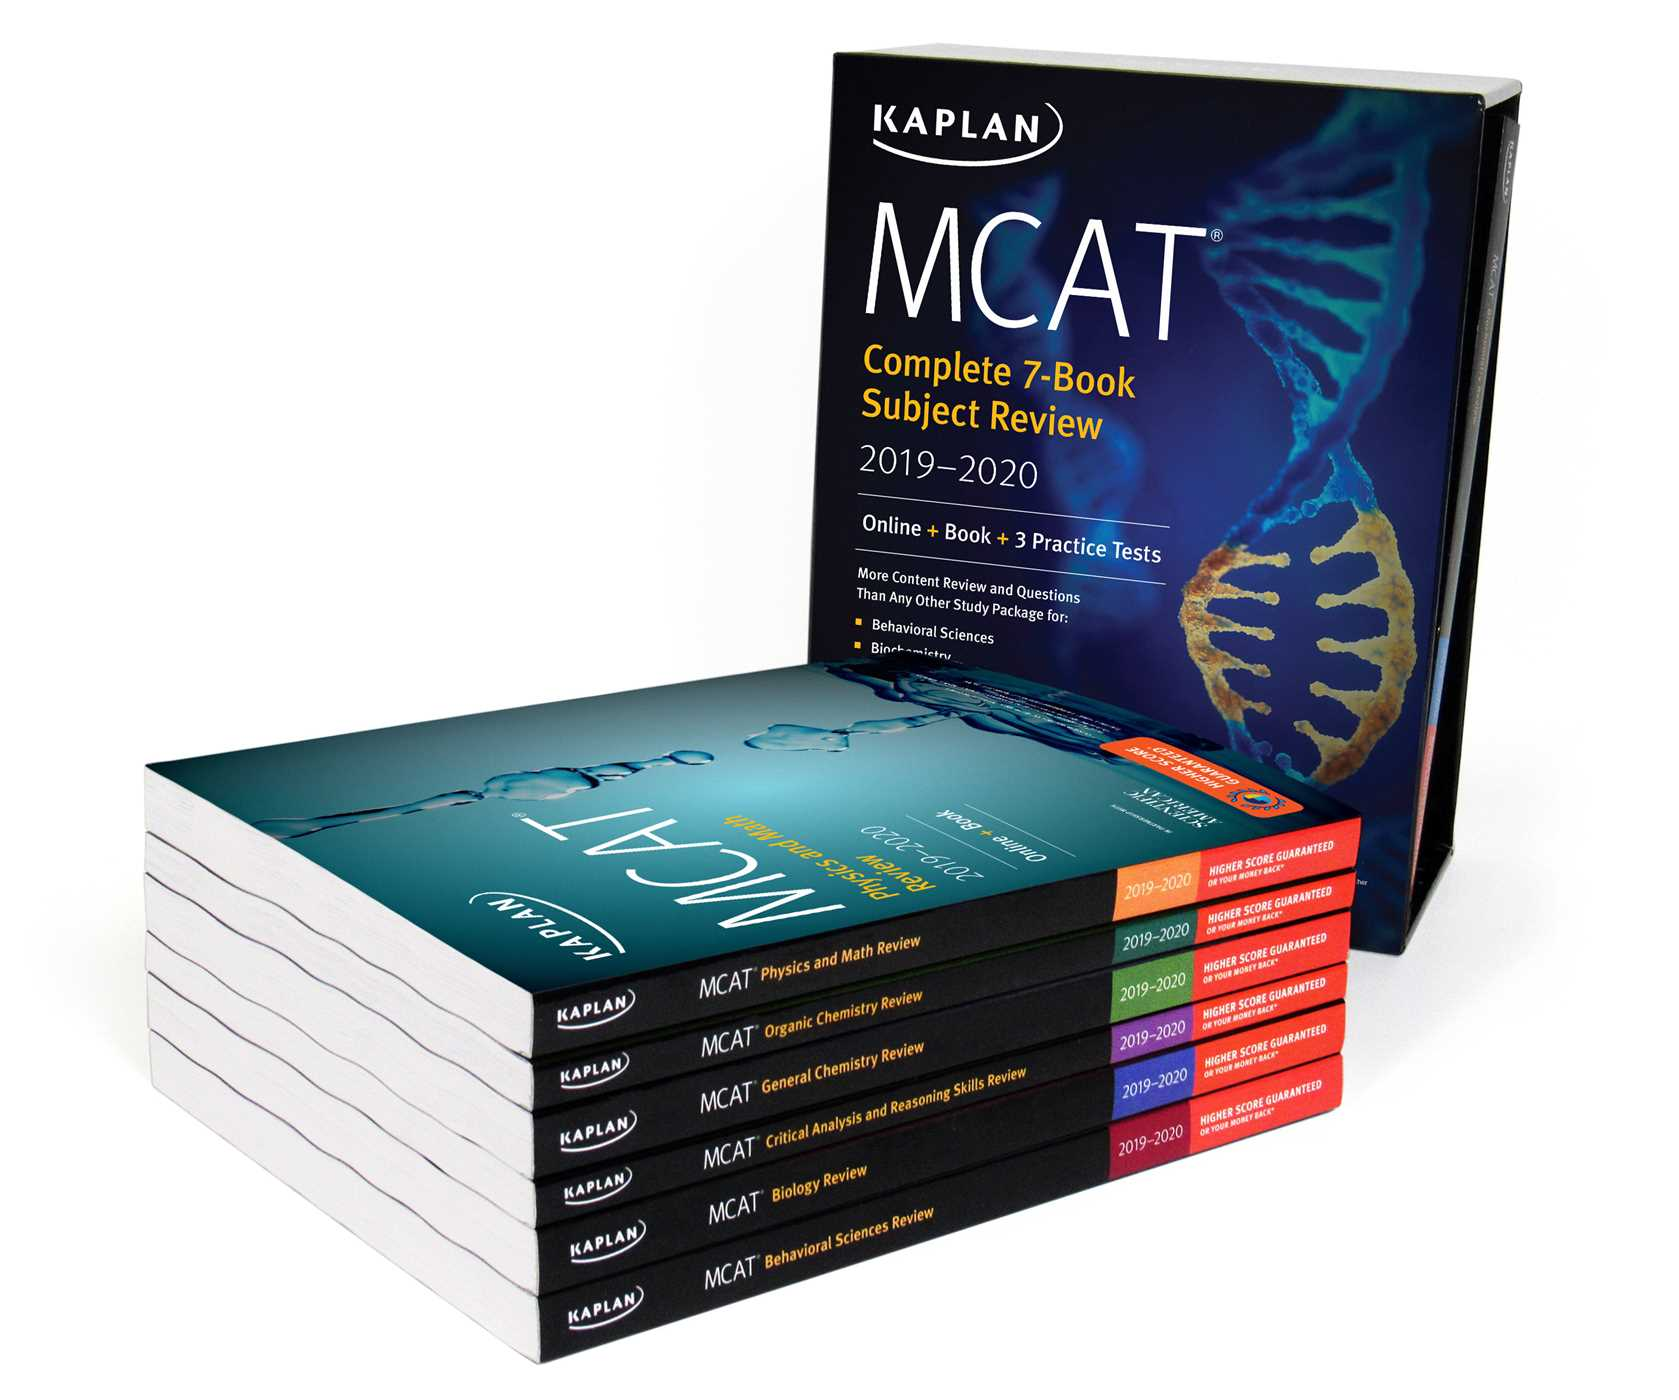 Book Cover Image Jpg MCAT Complete 7 Subject Review 2019 2020